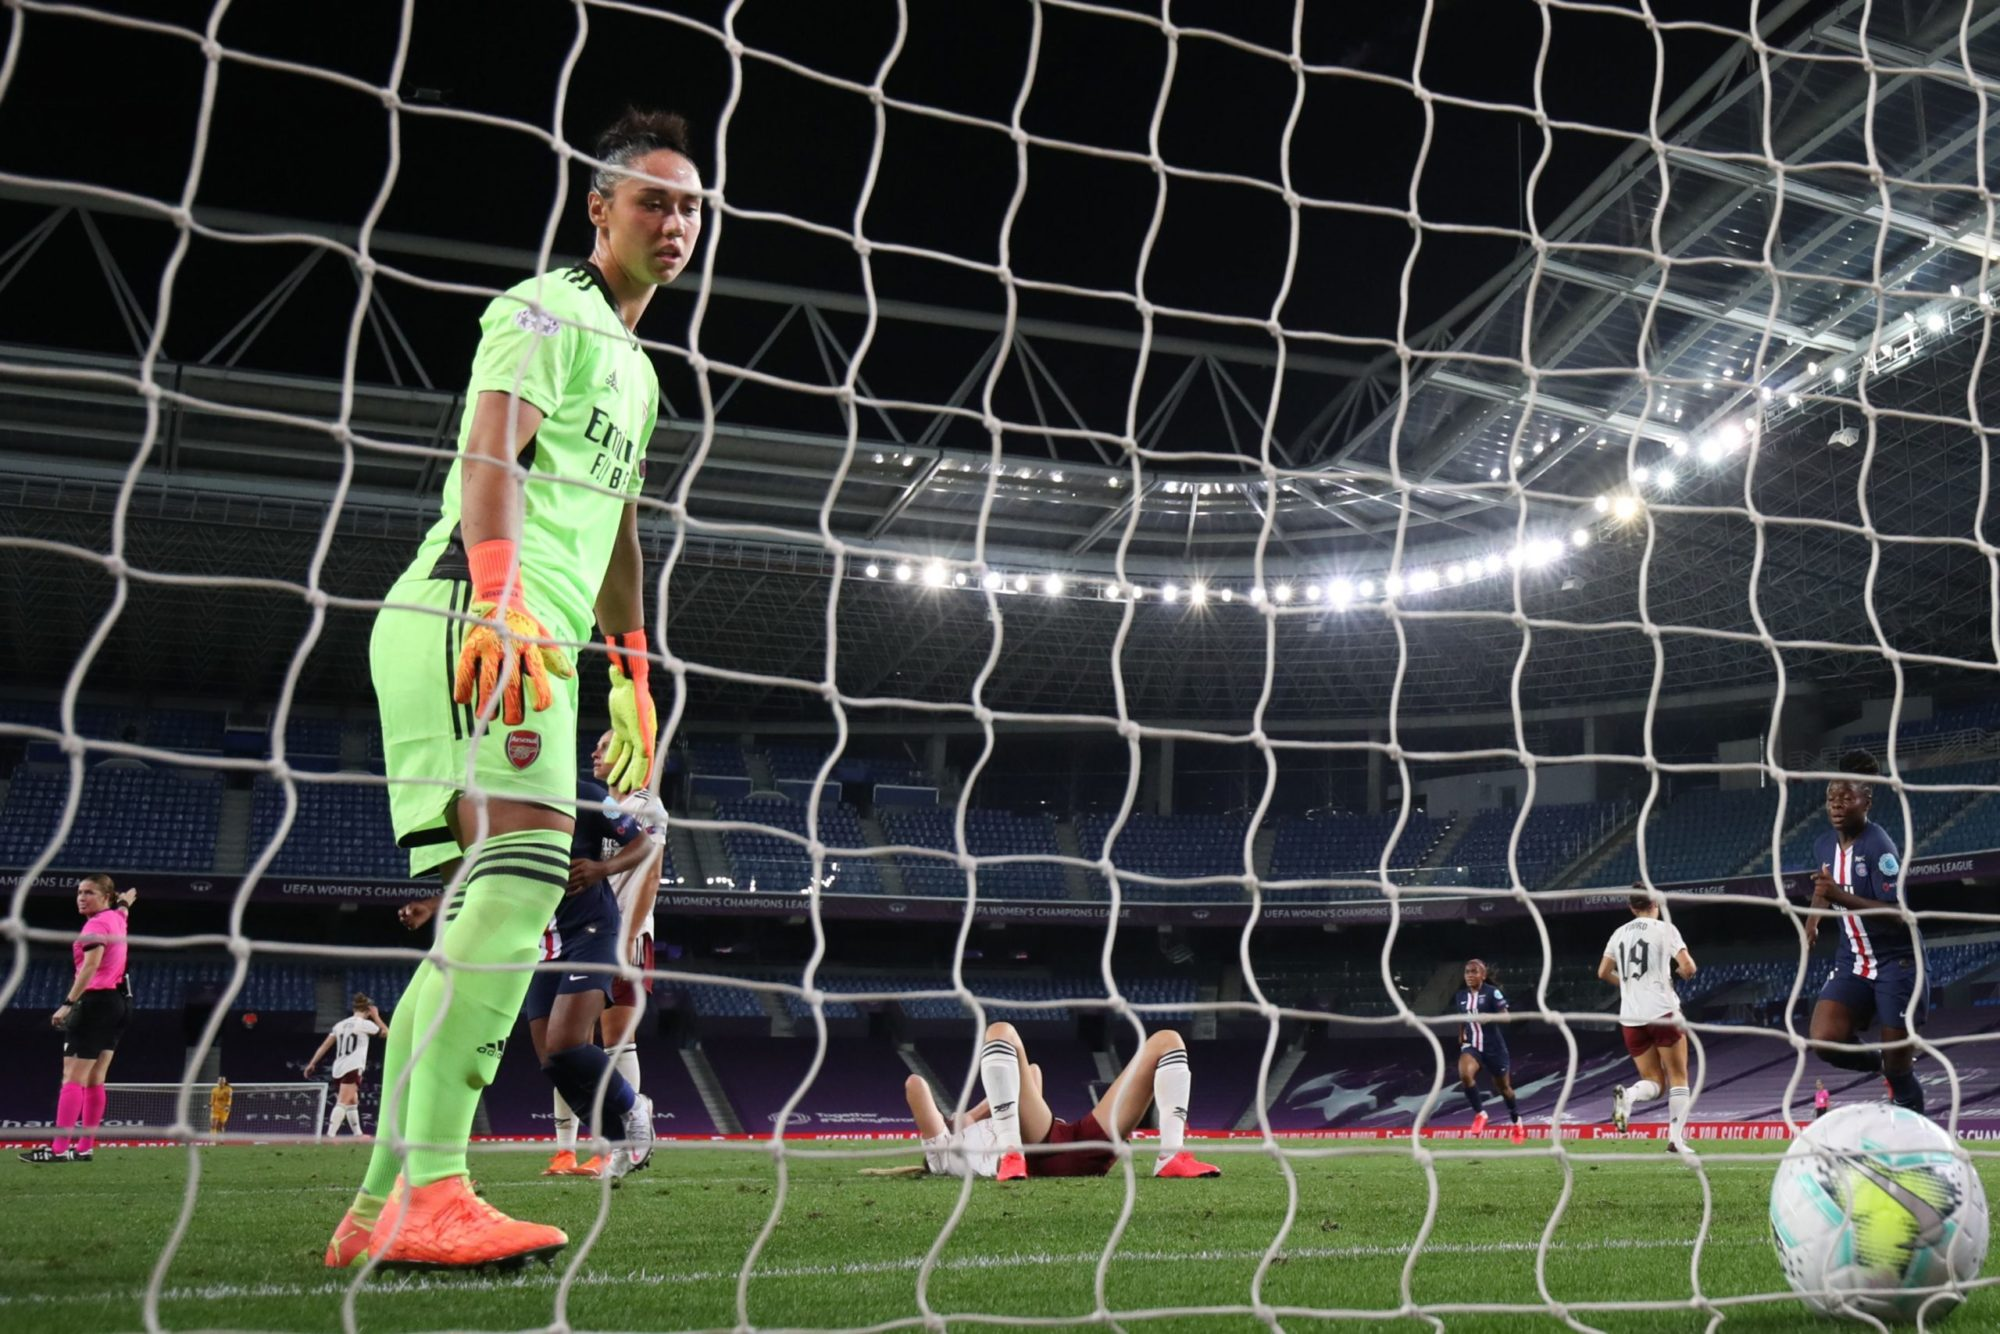 Arsenal's Austrian goalkeeper Manuela Zinsberger reacts after conceding the 2-1 goal during the UEFA Women's Champions League quarter-final football match between Arsenal and Paris SG at the Anoeta stadium in San Sebastian on August 22, 2020. (Photo by Clive Brunskill / POOL / AFP)